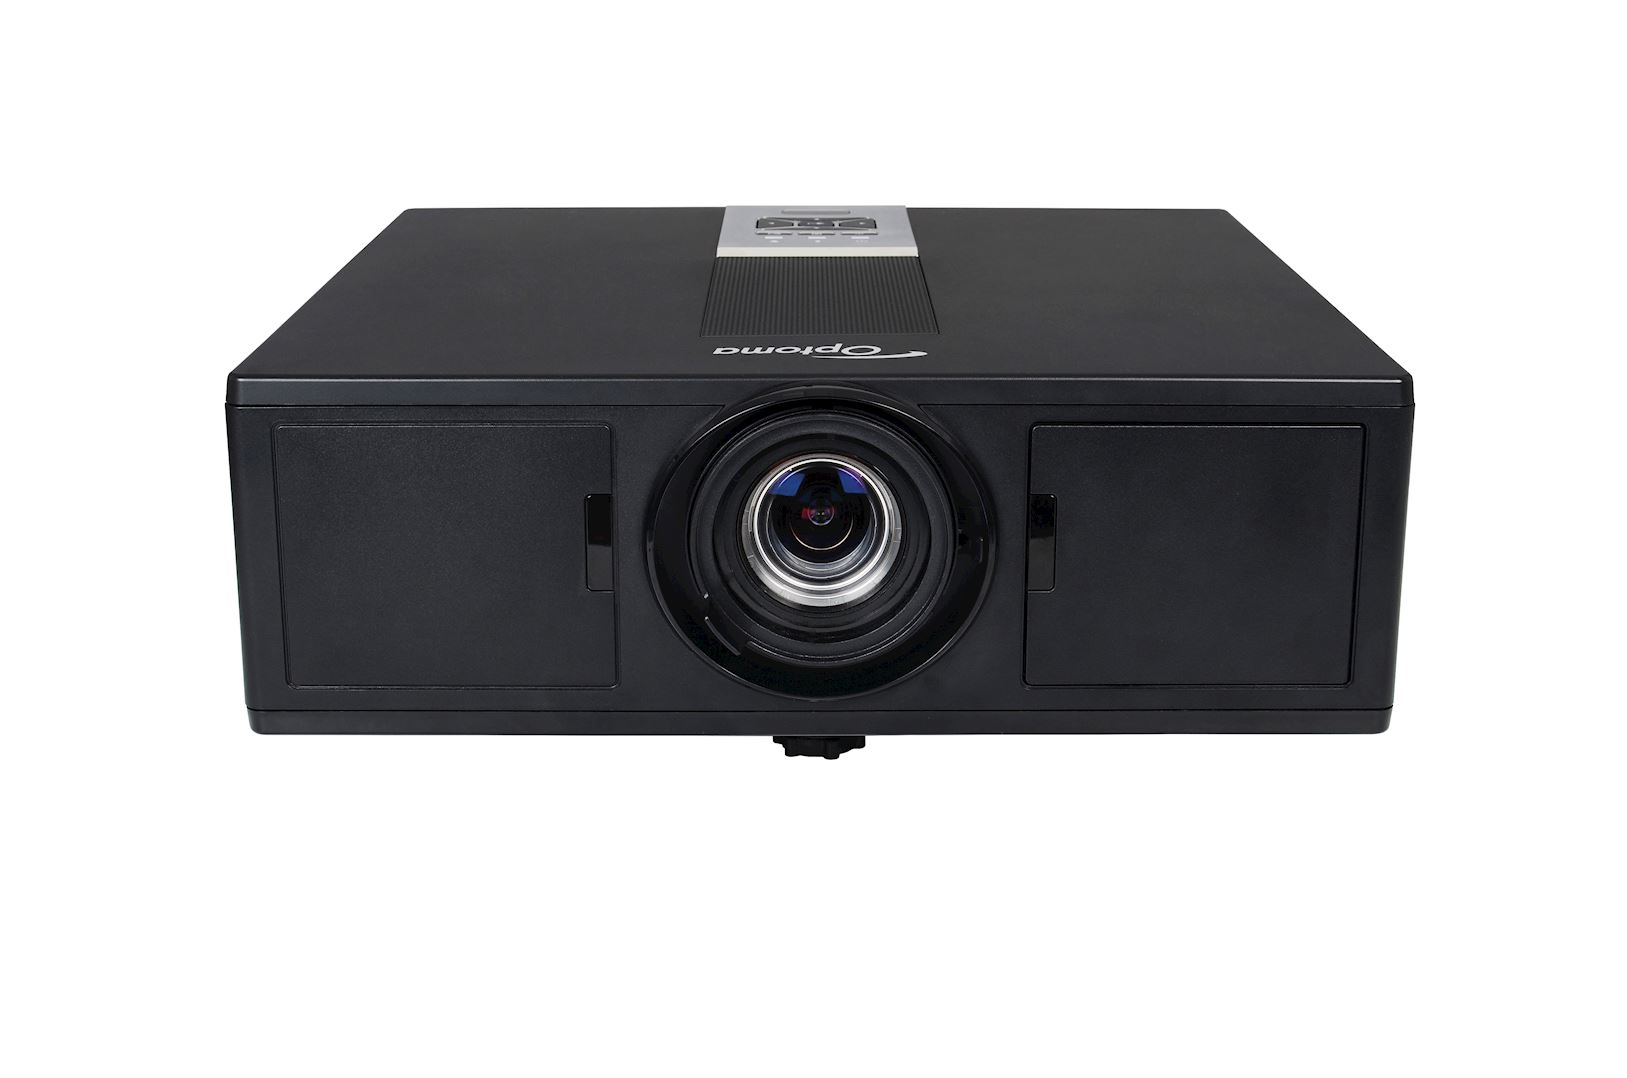 Optoma ZU510T-B 5500lm WUXGA DLP Installation Projector, Refurbished